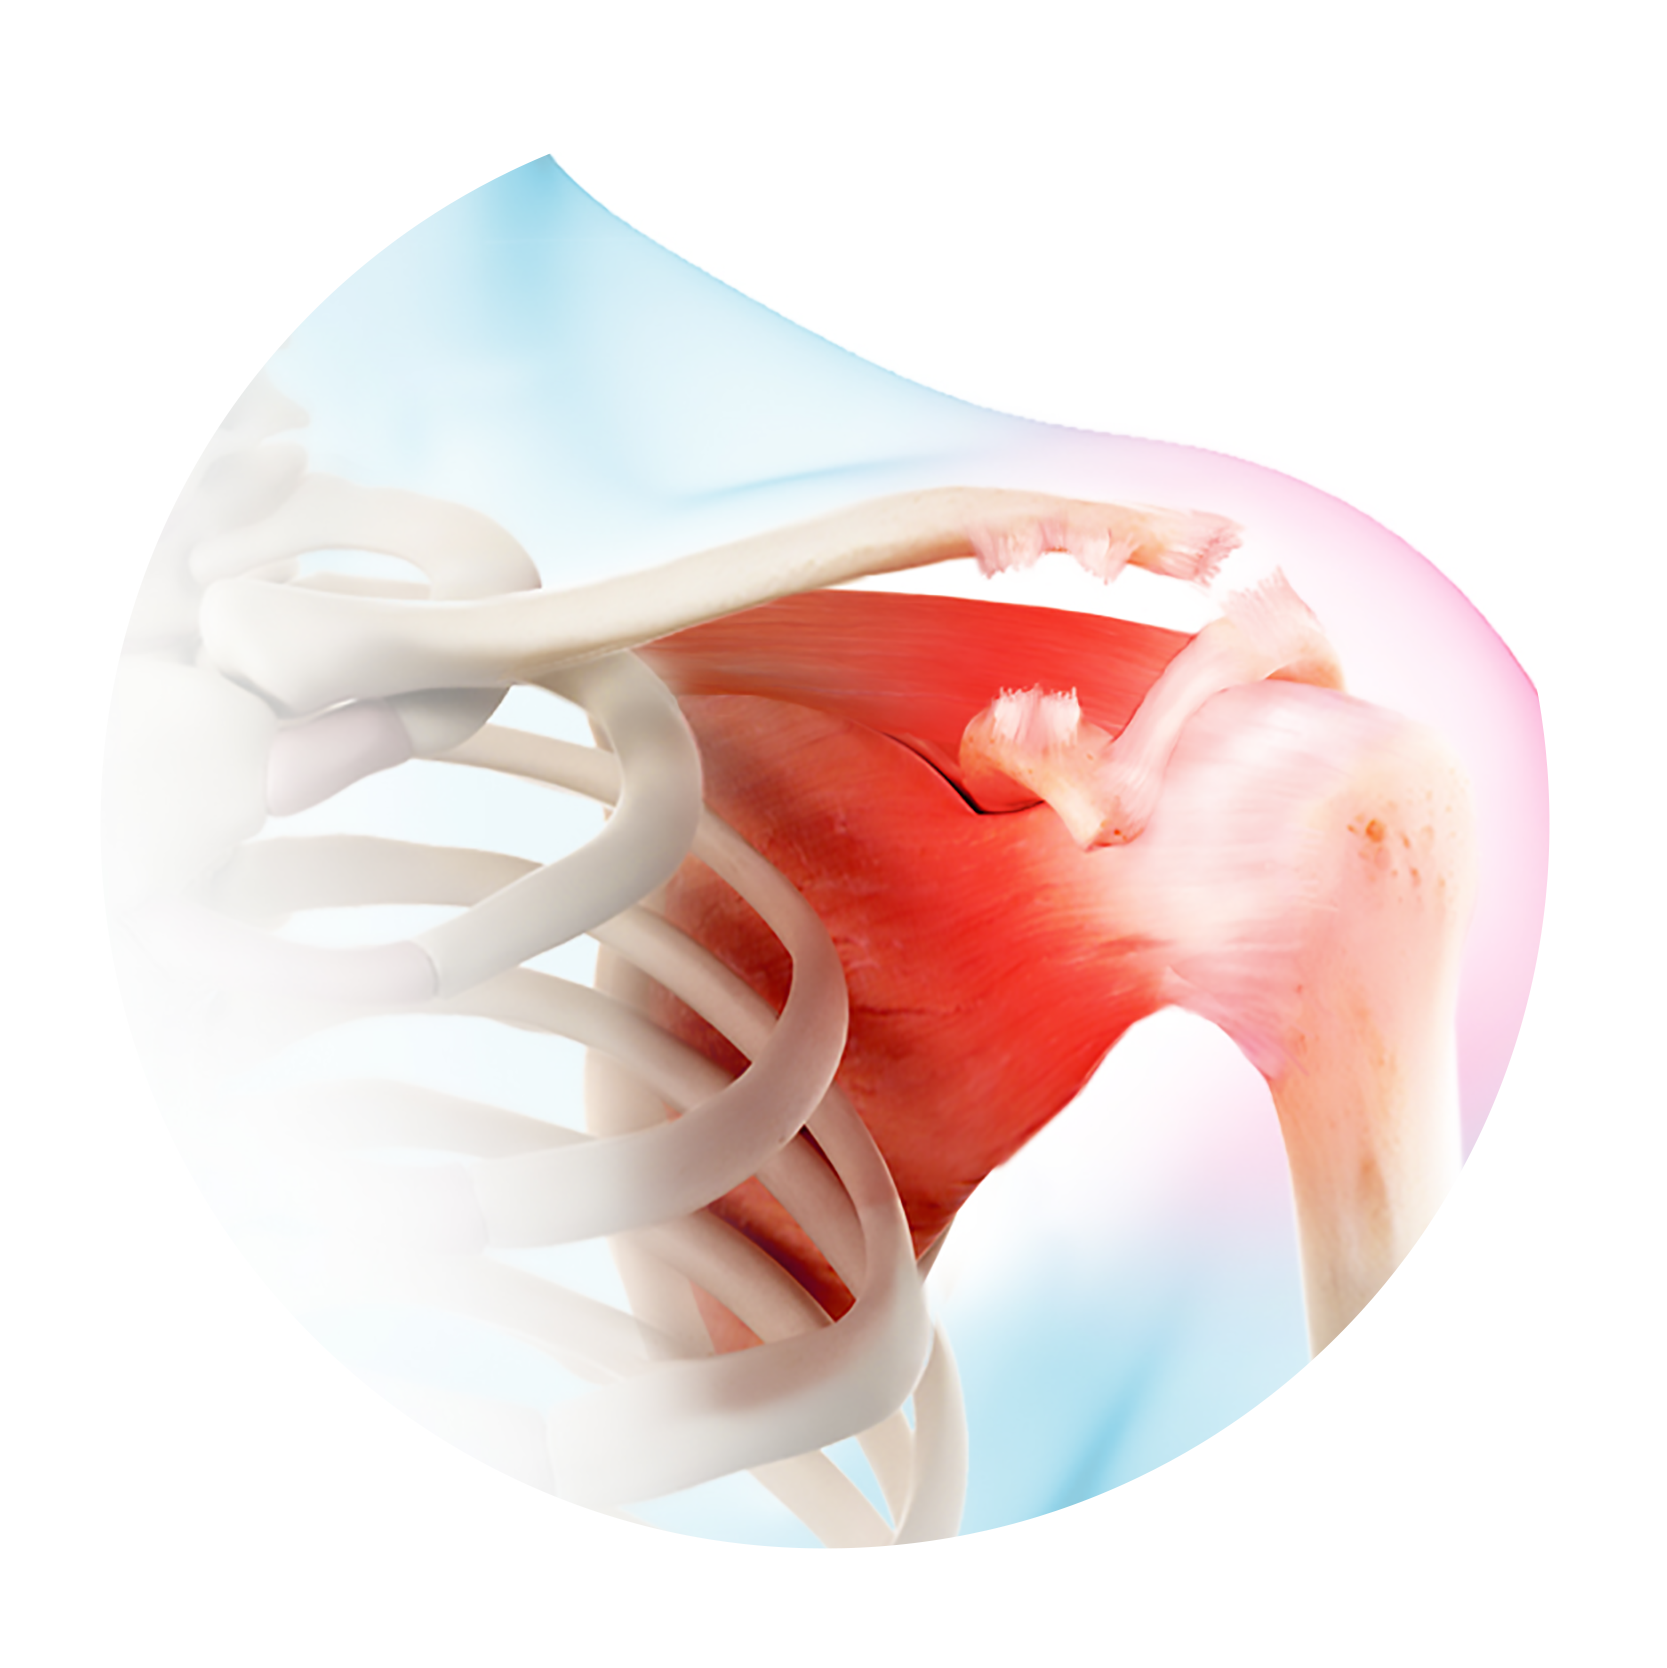 The Acromioclavicular Joint Module